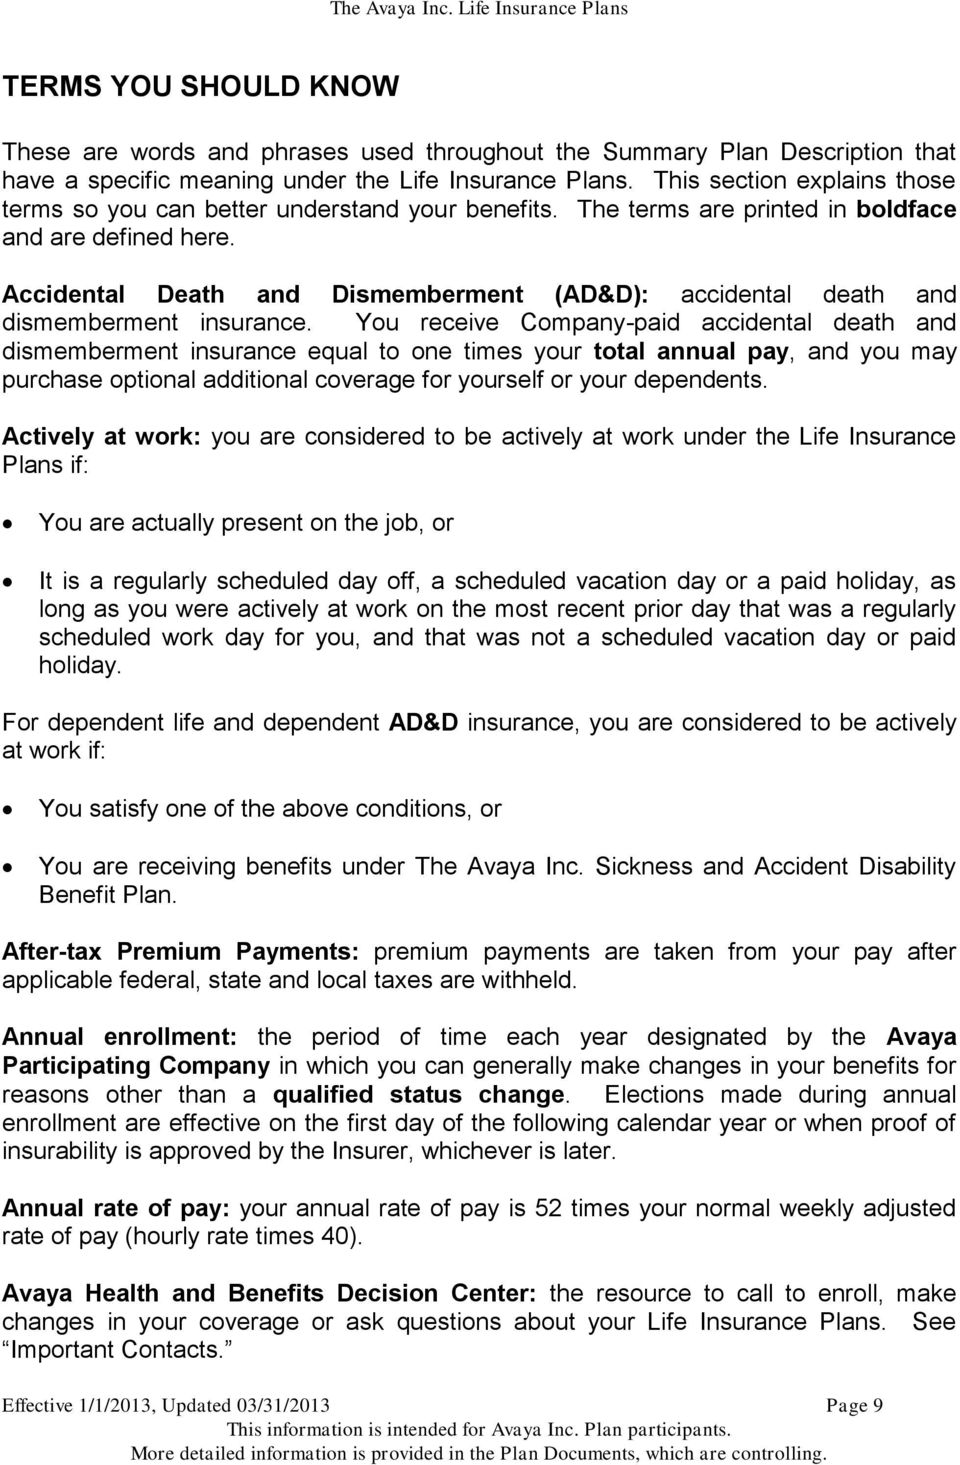 Accidental Death and Dismemberment (AD&D): accidental death and dismemberment insurance.